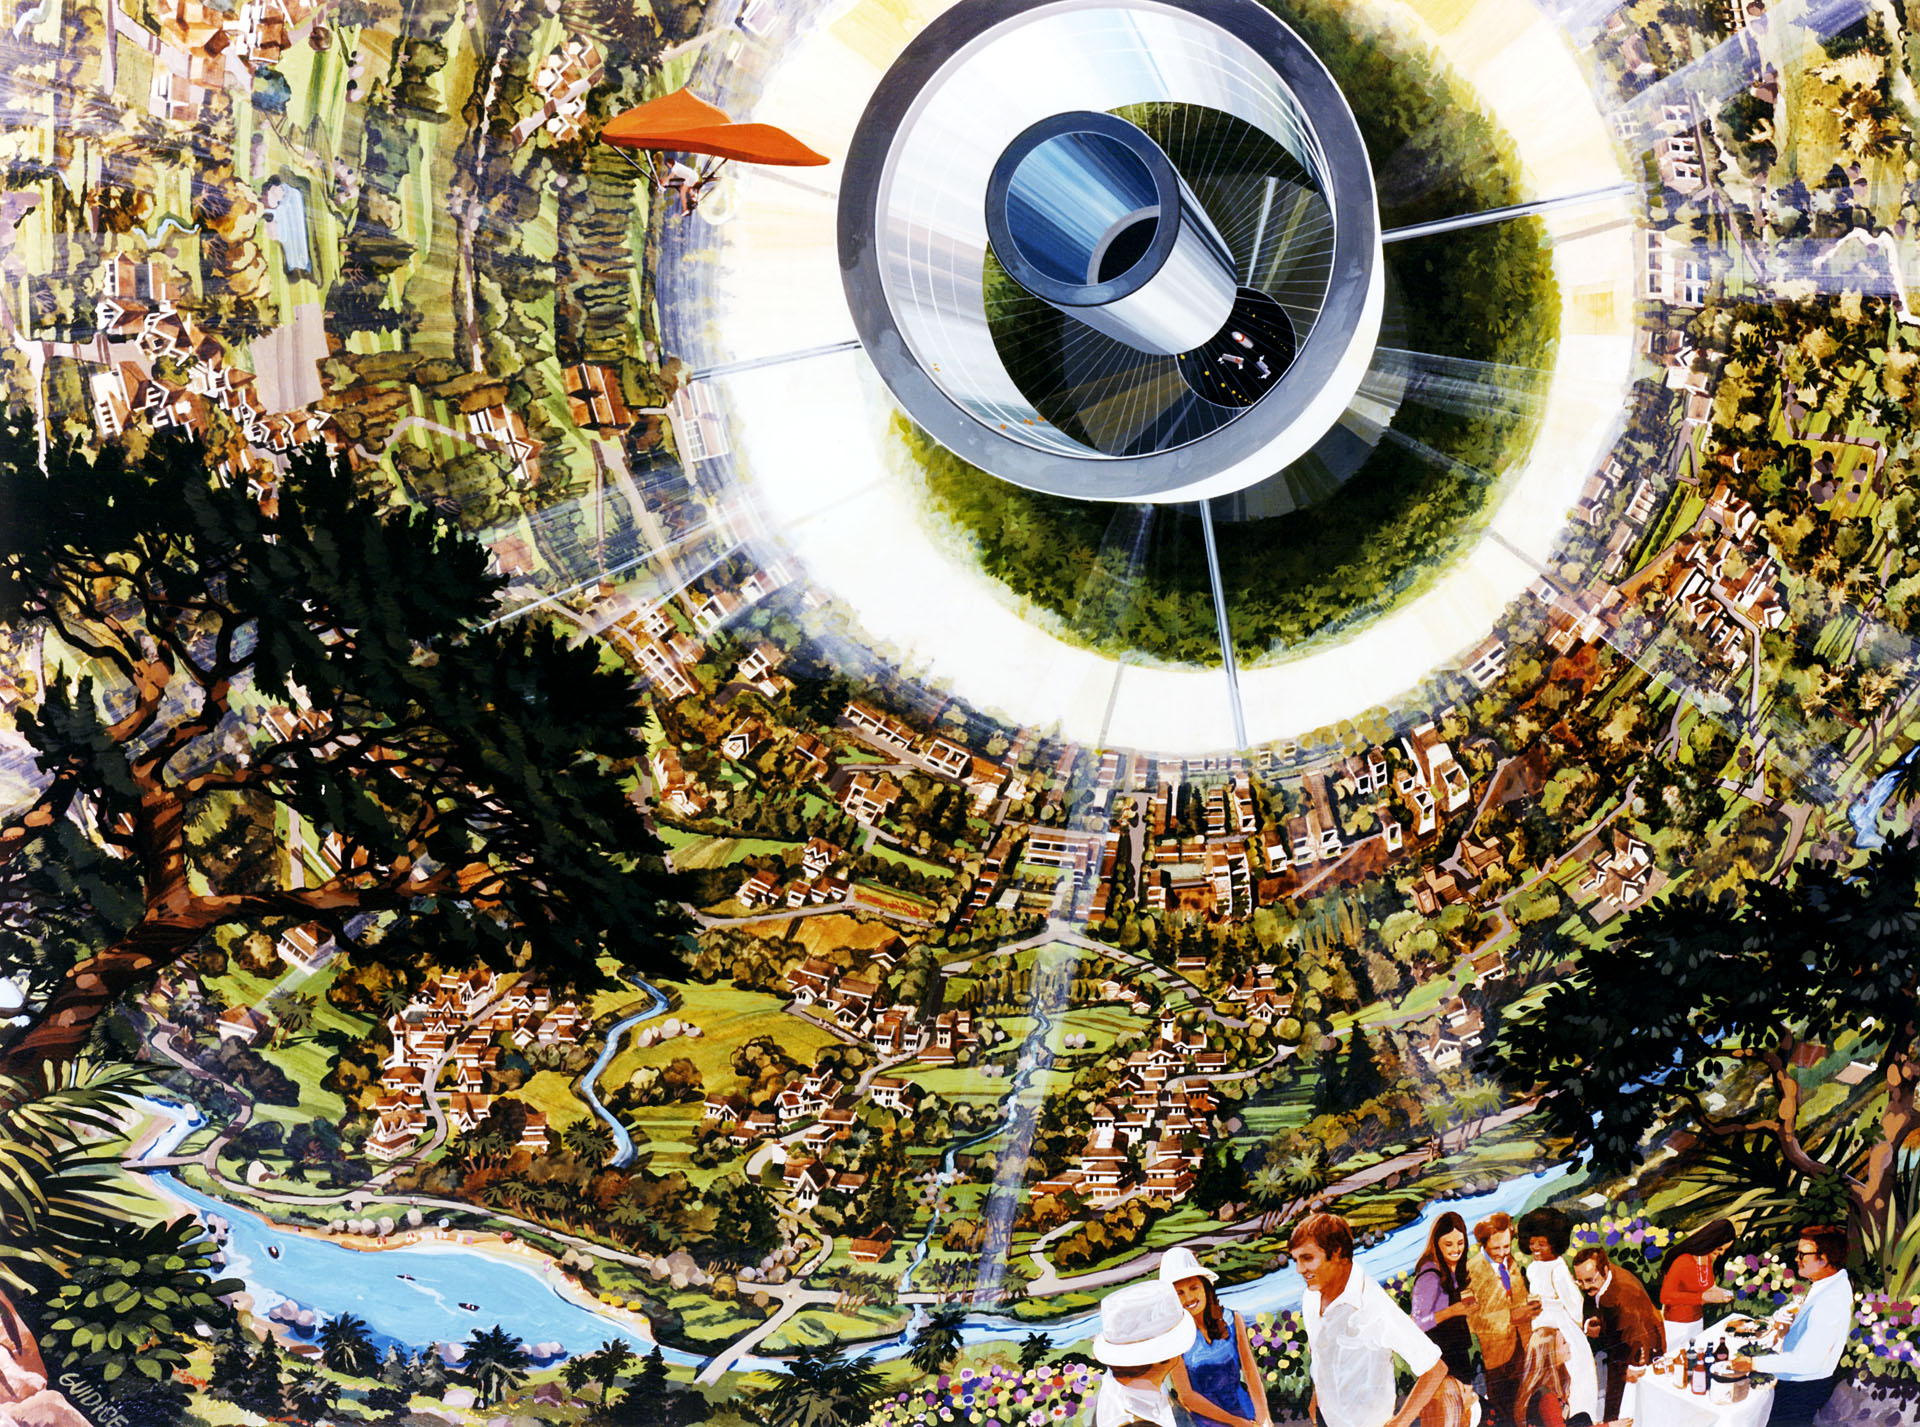 Space Colony Concepts: NASA's 1970s Vision for Giant Space ...